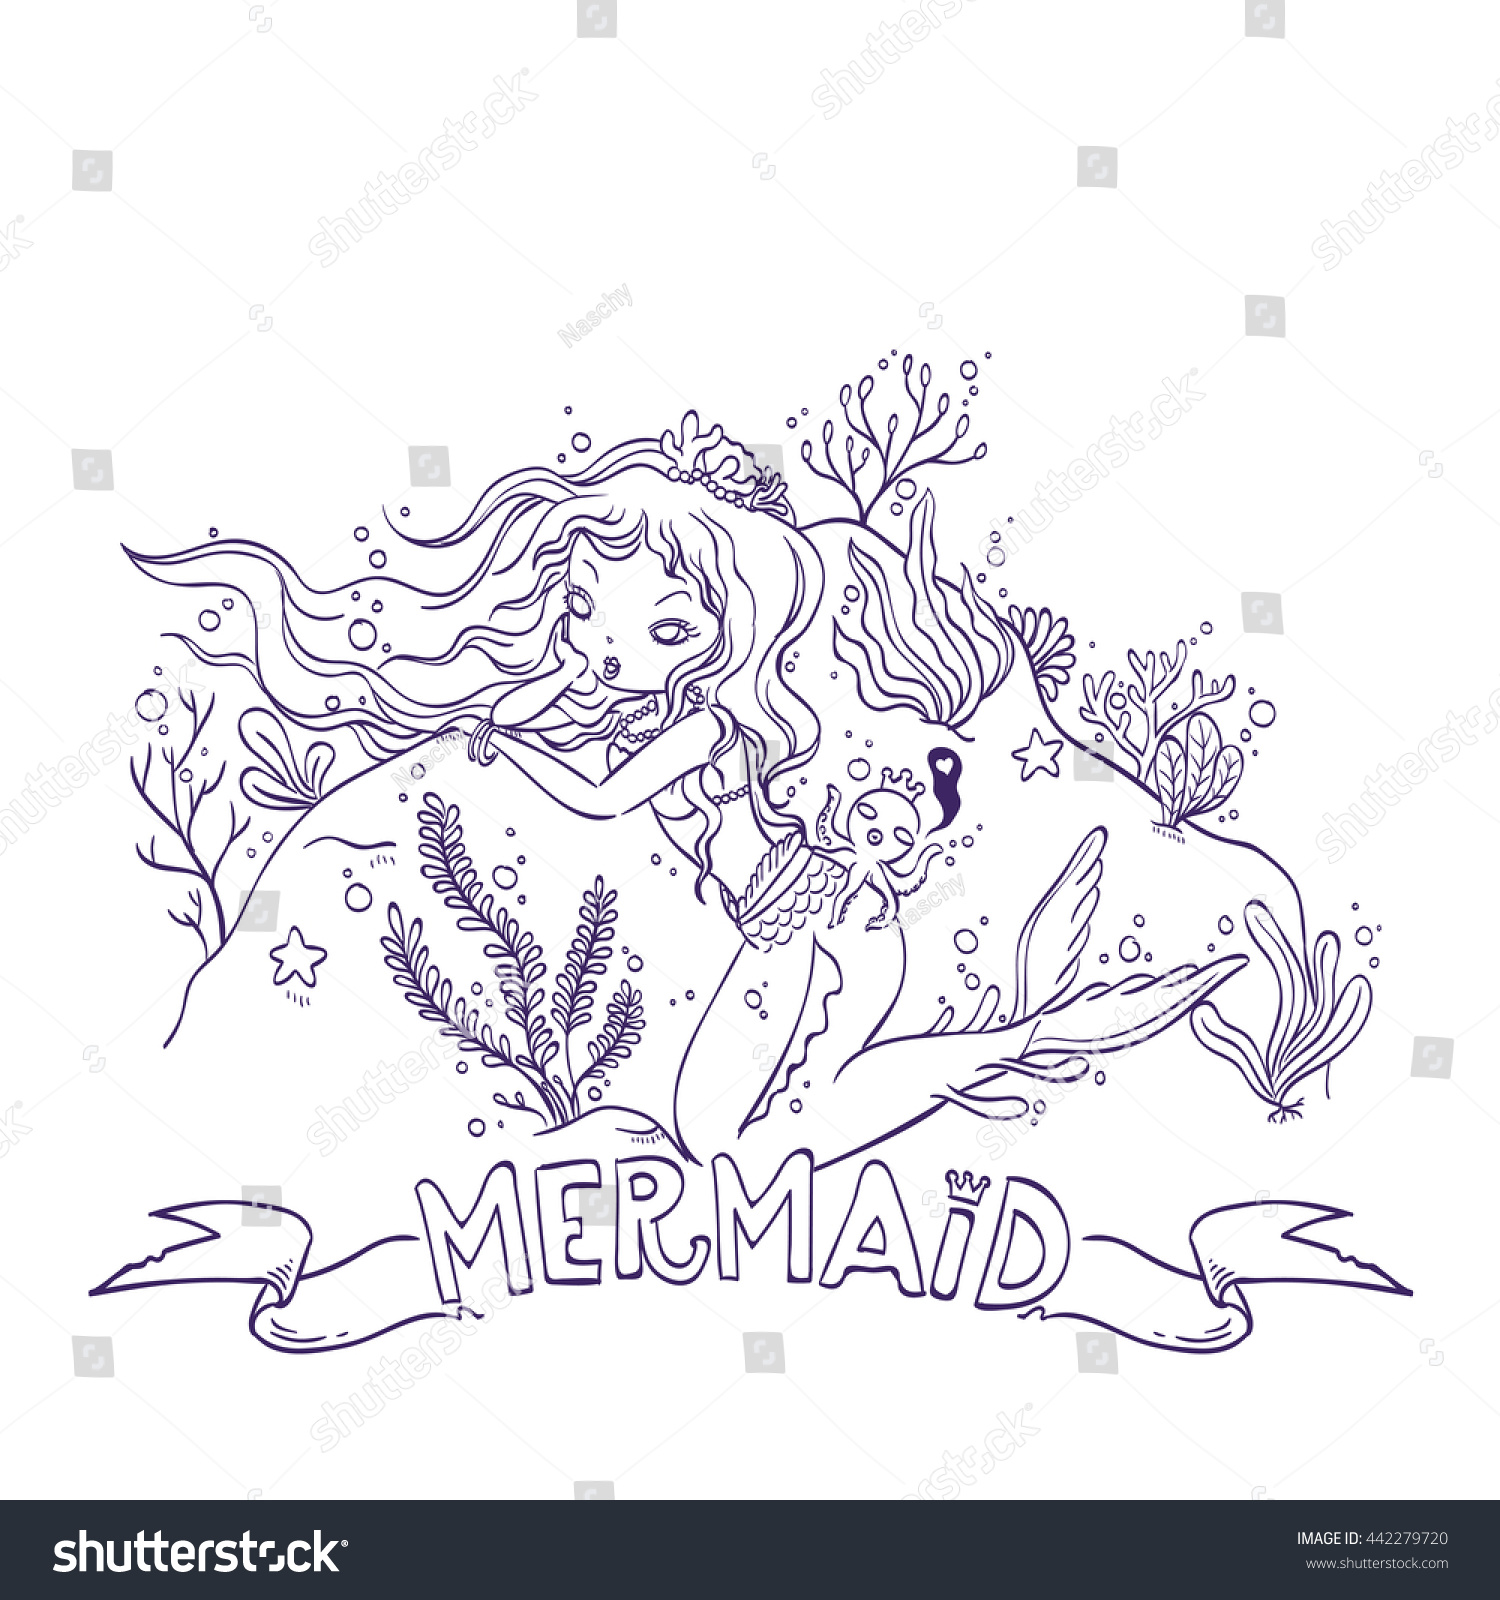 vector illustration mermaid octopus king under stock vector